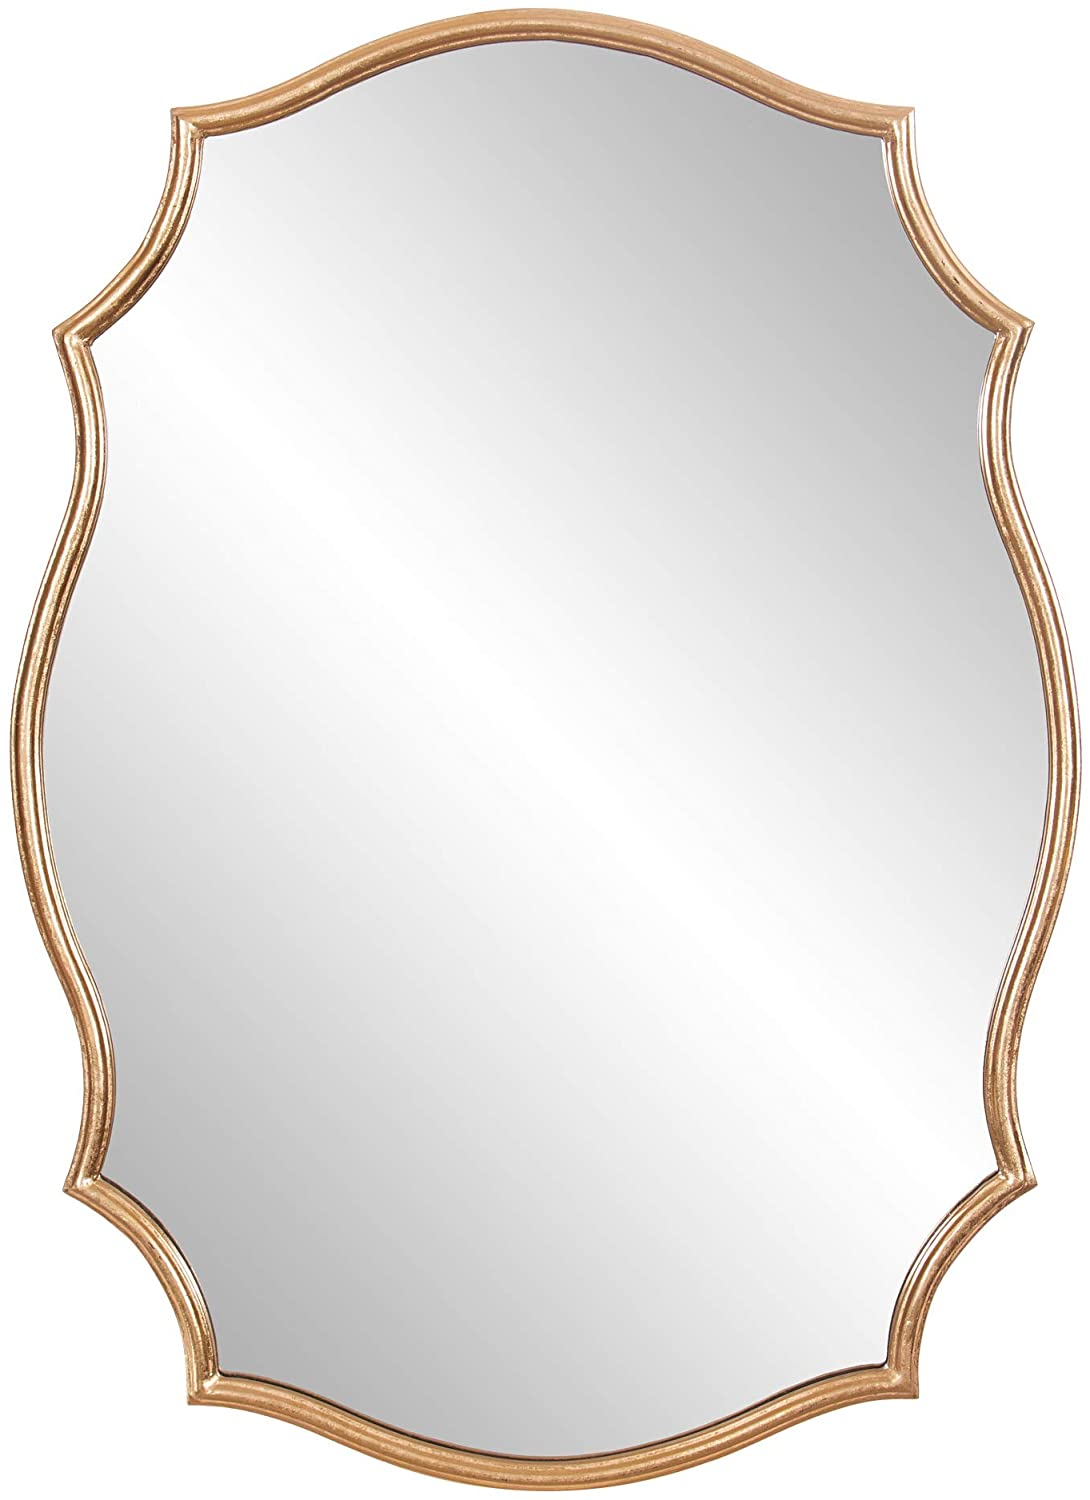 Patton Wall Decor 24x36 Gold Ornate Accent Wall Mounted Mirrors: Home & Kitchen